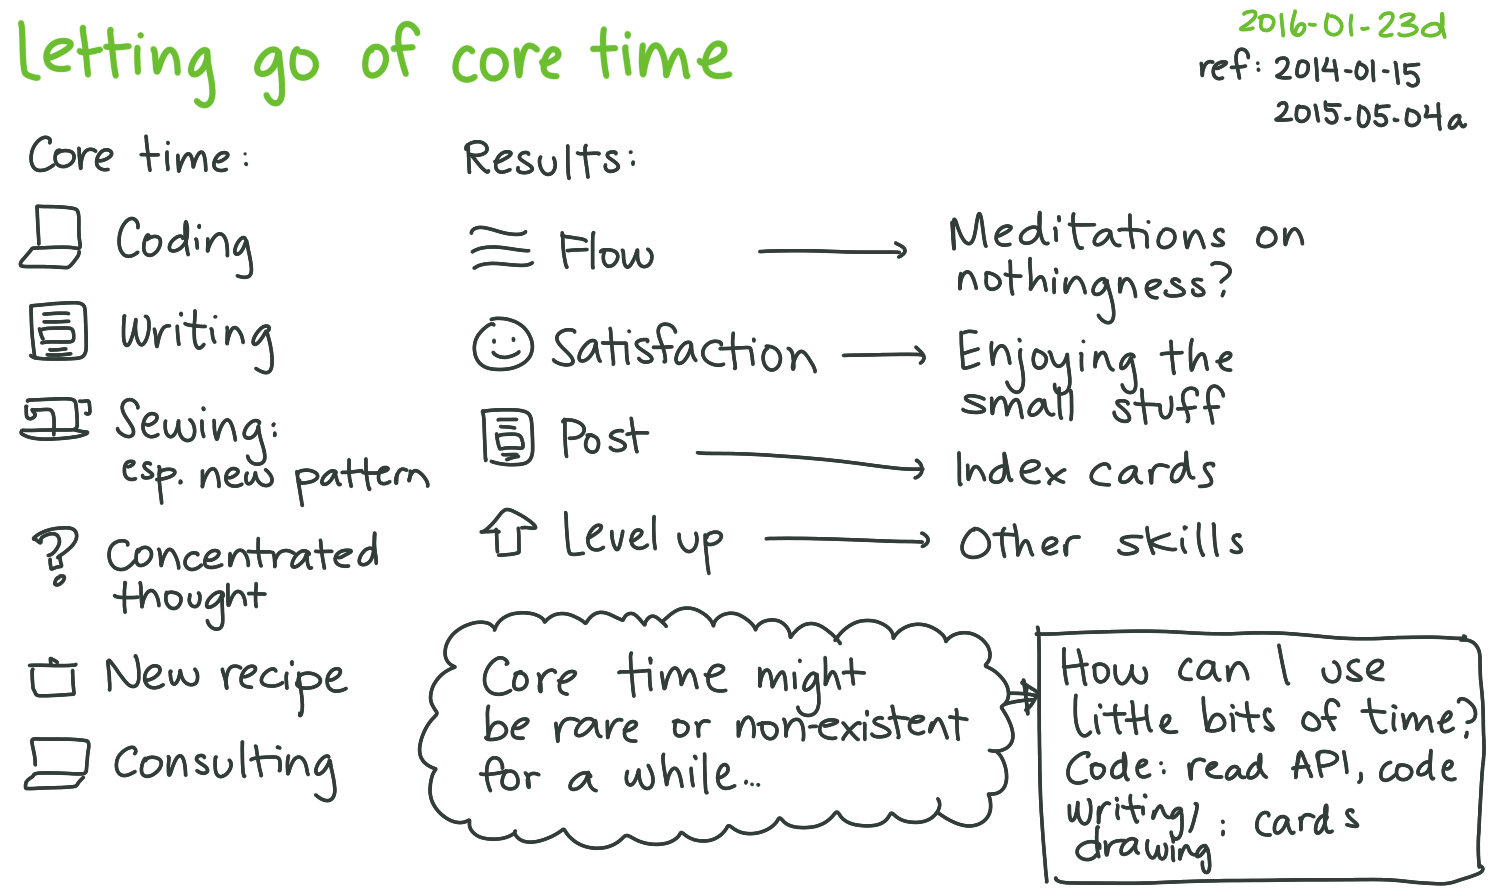 2016-01-23d Letting go of core time -- index card #focus #concentration #time ref 2014-01-15 2015-05-04a.png